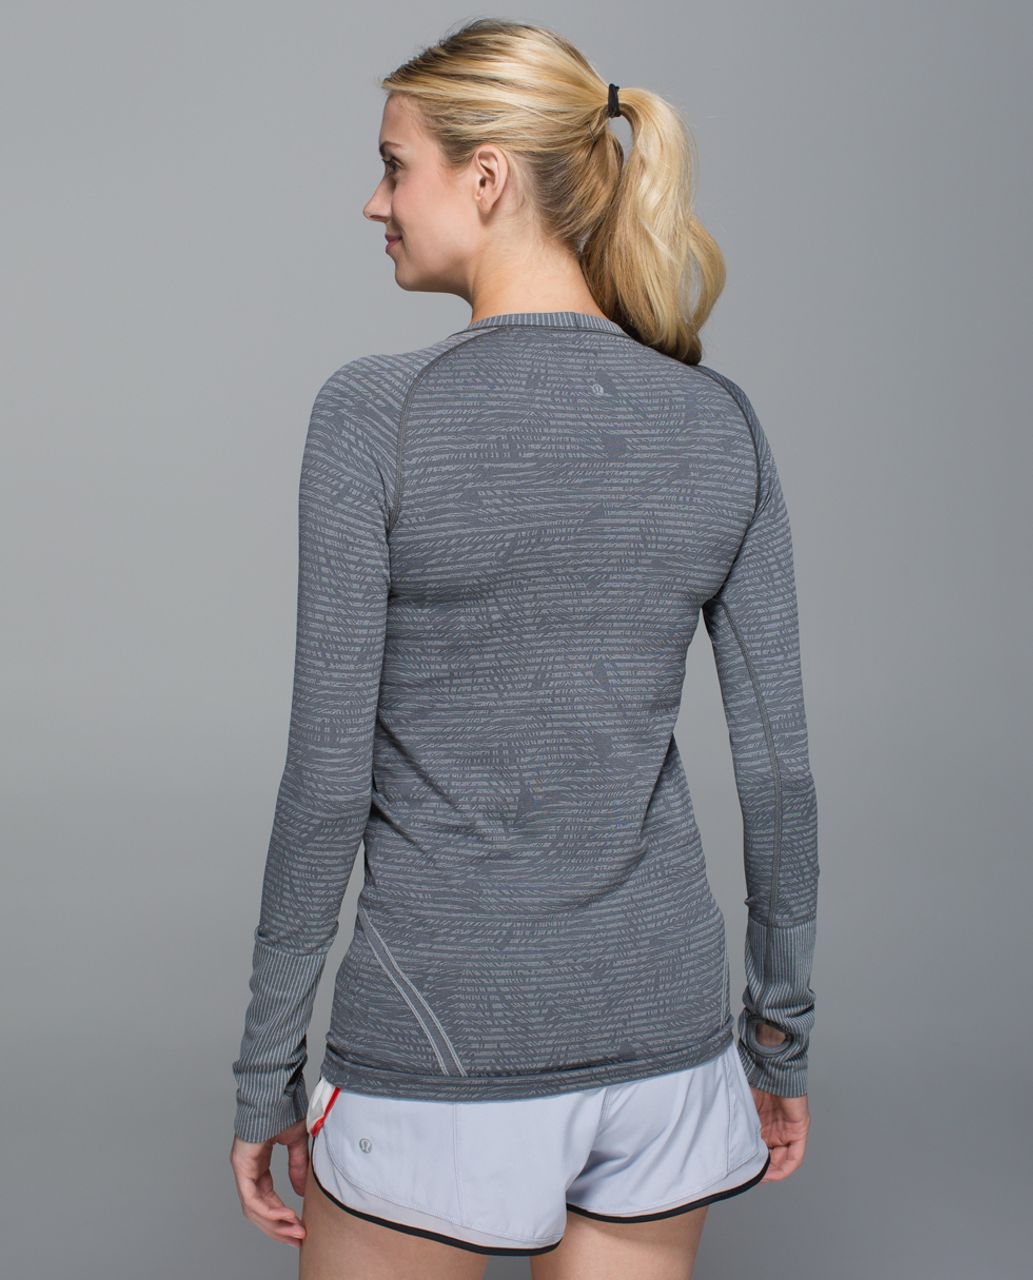 Lululemon Swiftly Tech Long Sleeve Crew - Heathered Slate (Second Release)